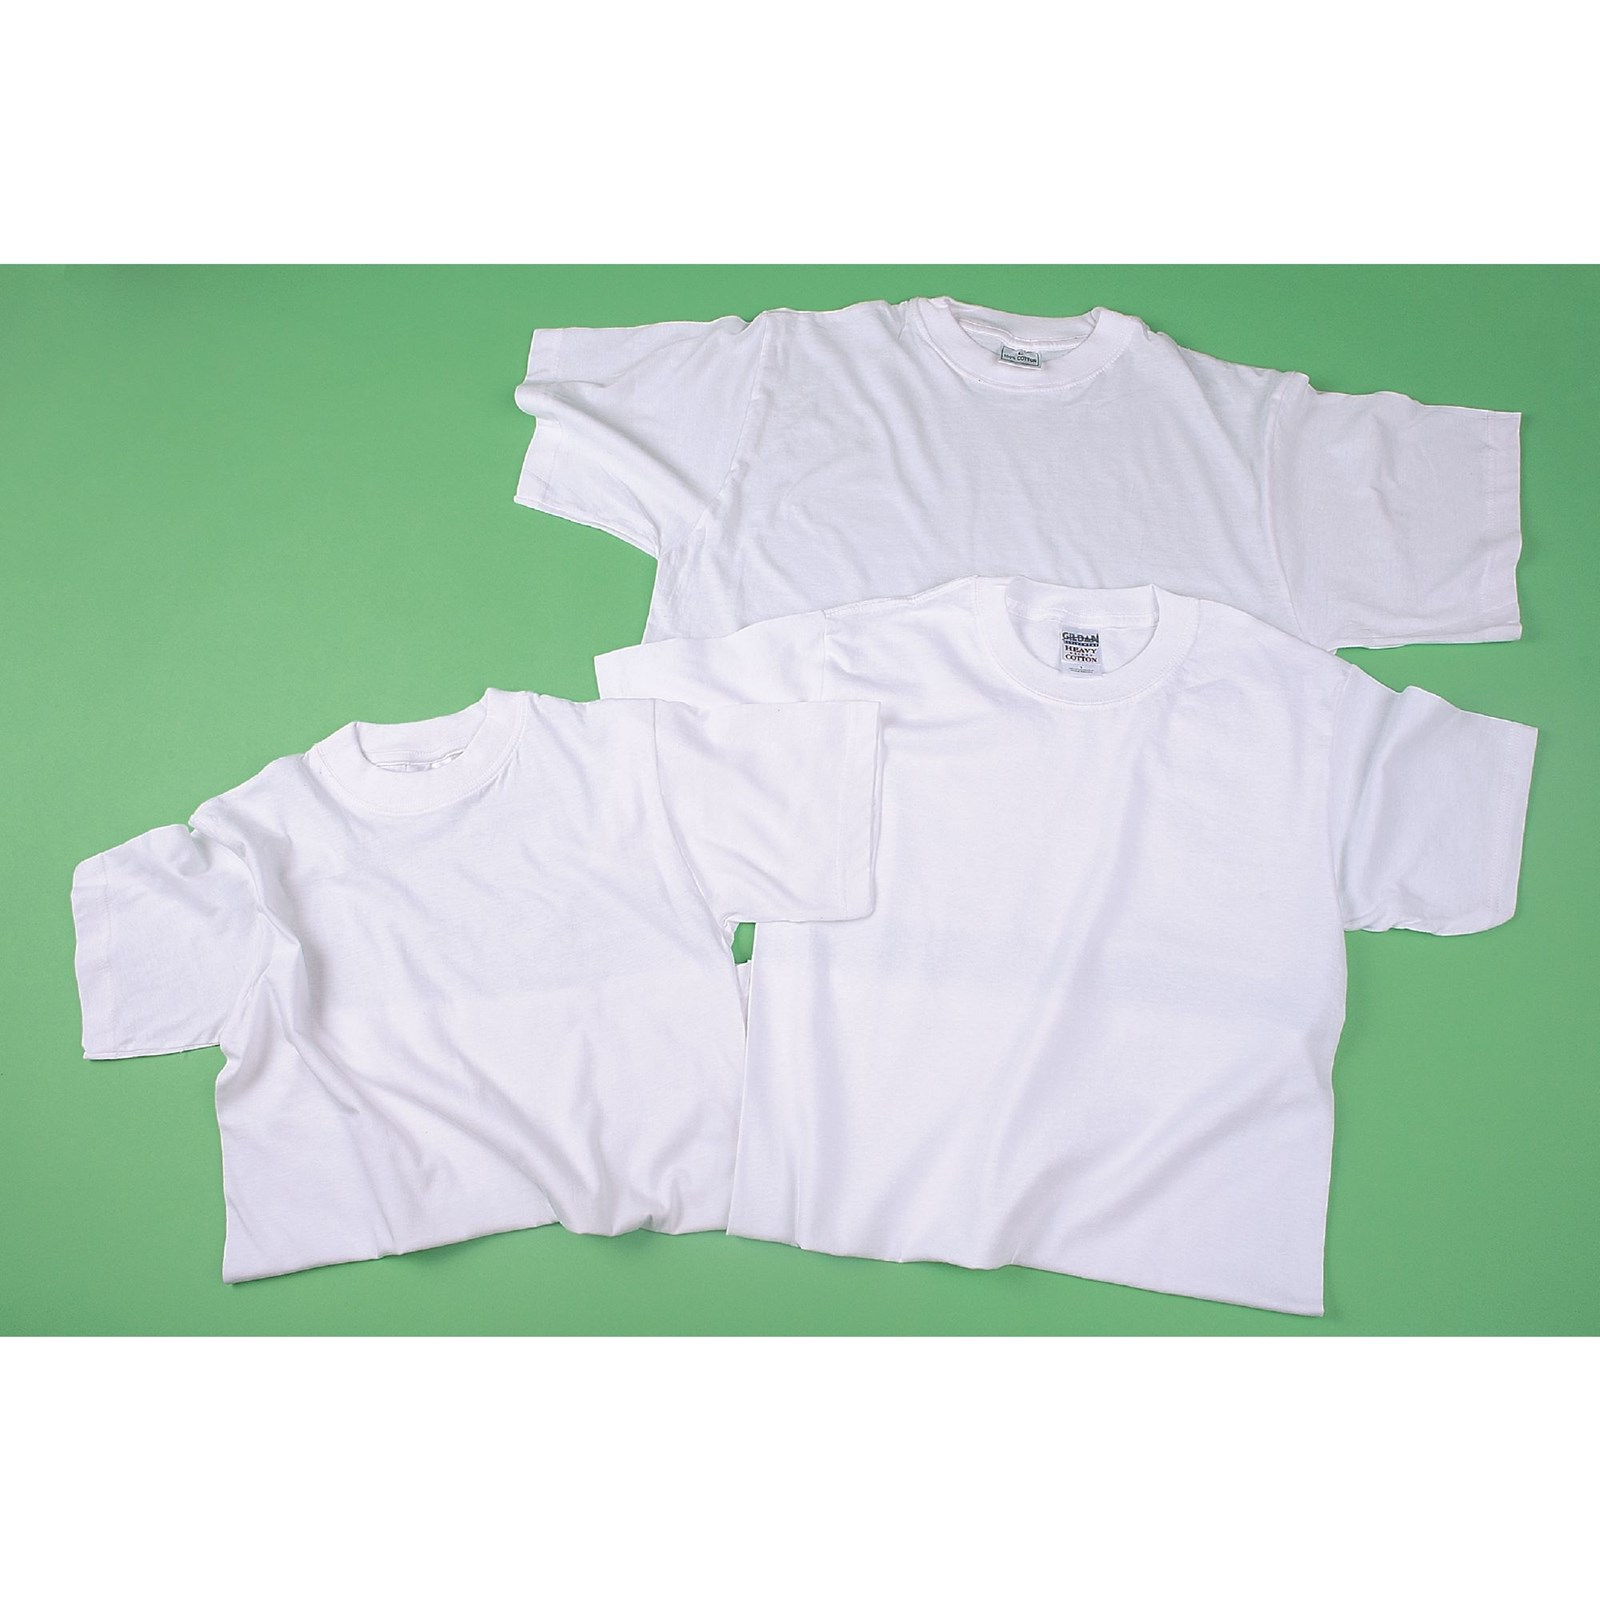 Sports Day T-shirts - 73cm chest